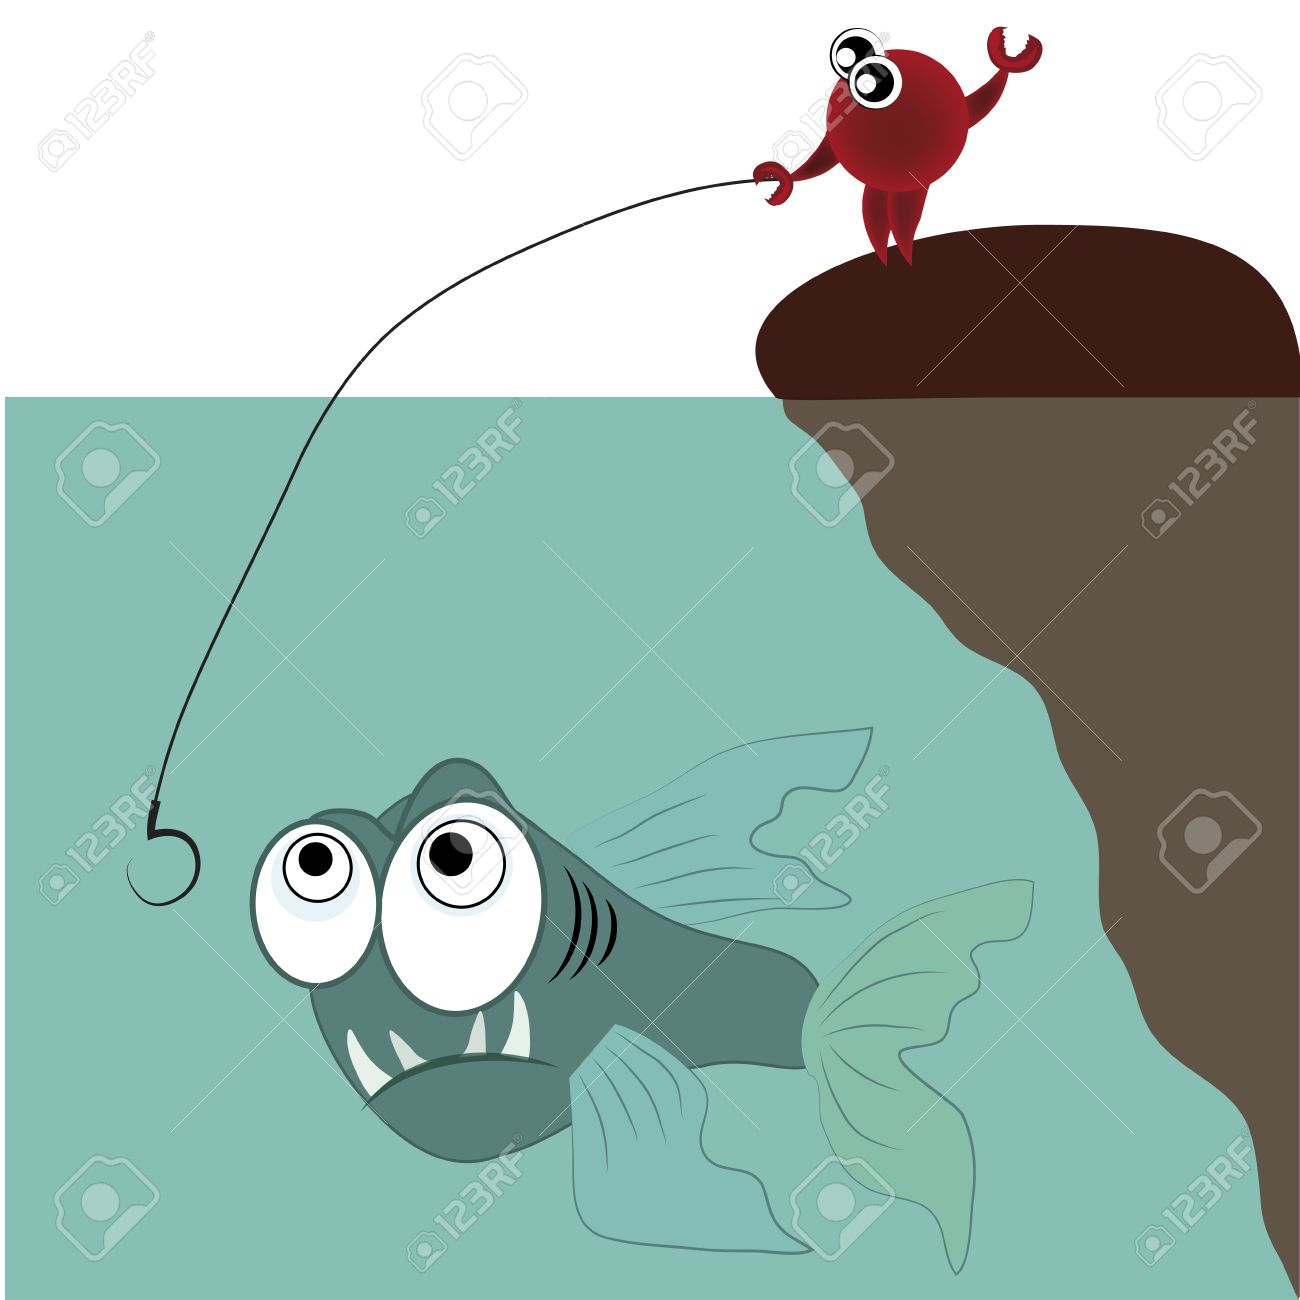 A Crab Fishing An Angry Fish In The Ocean Royalty Free Cliparts.